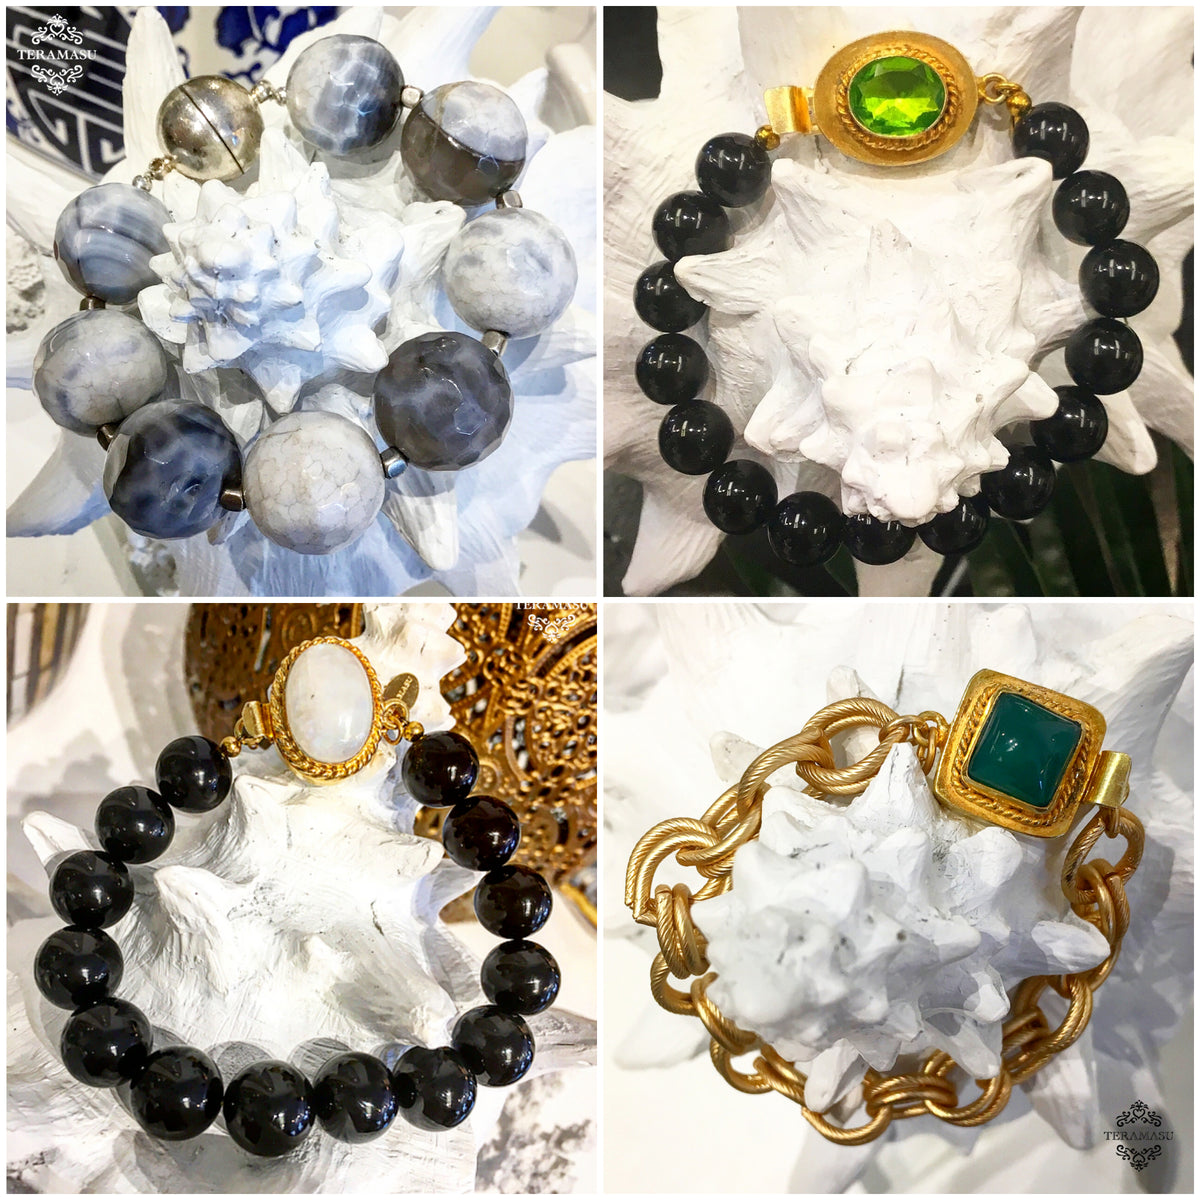 Chic Peek: The Perfect, Handmade Designer Statement Bracelets for Your One-of-a-Kind Fall Style